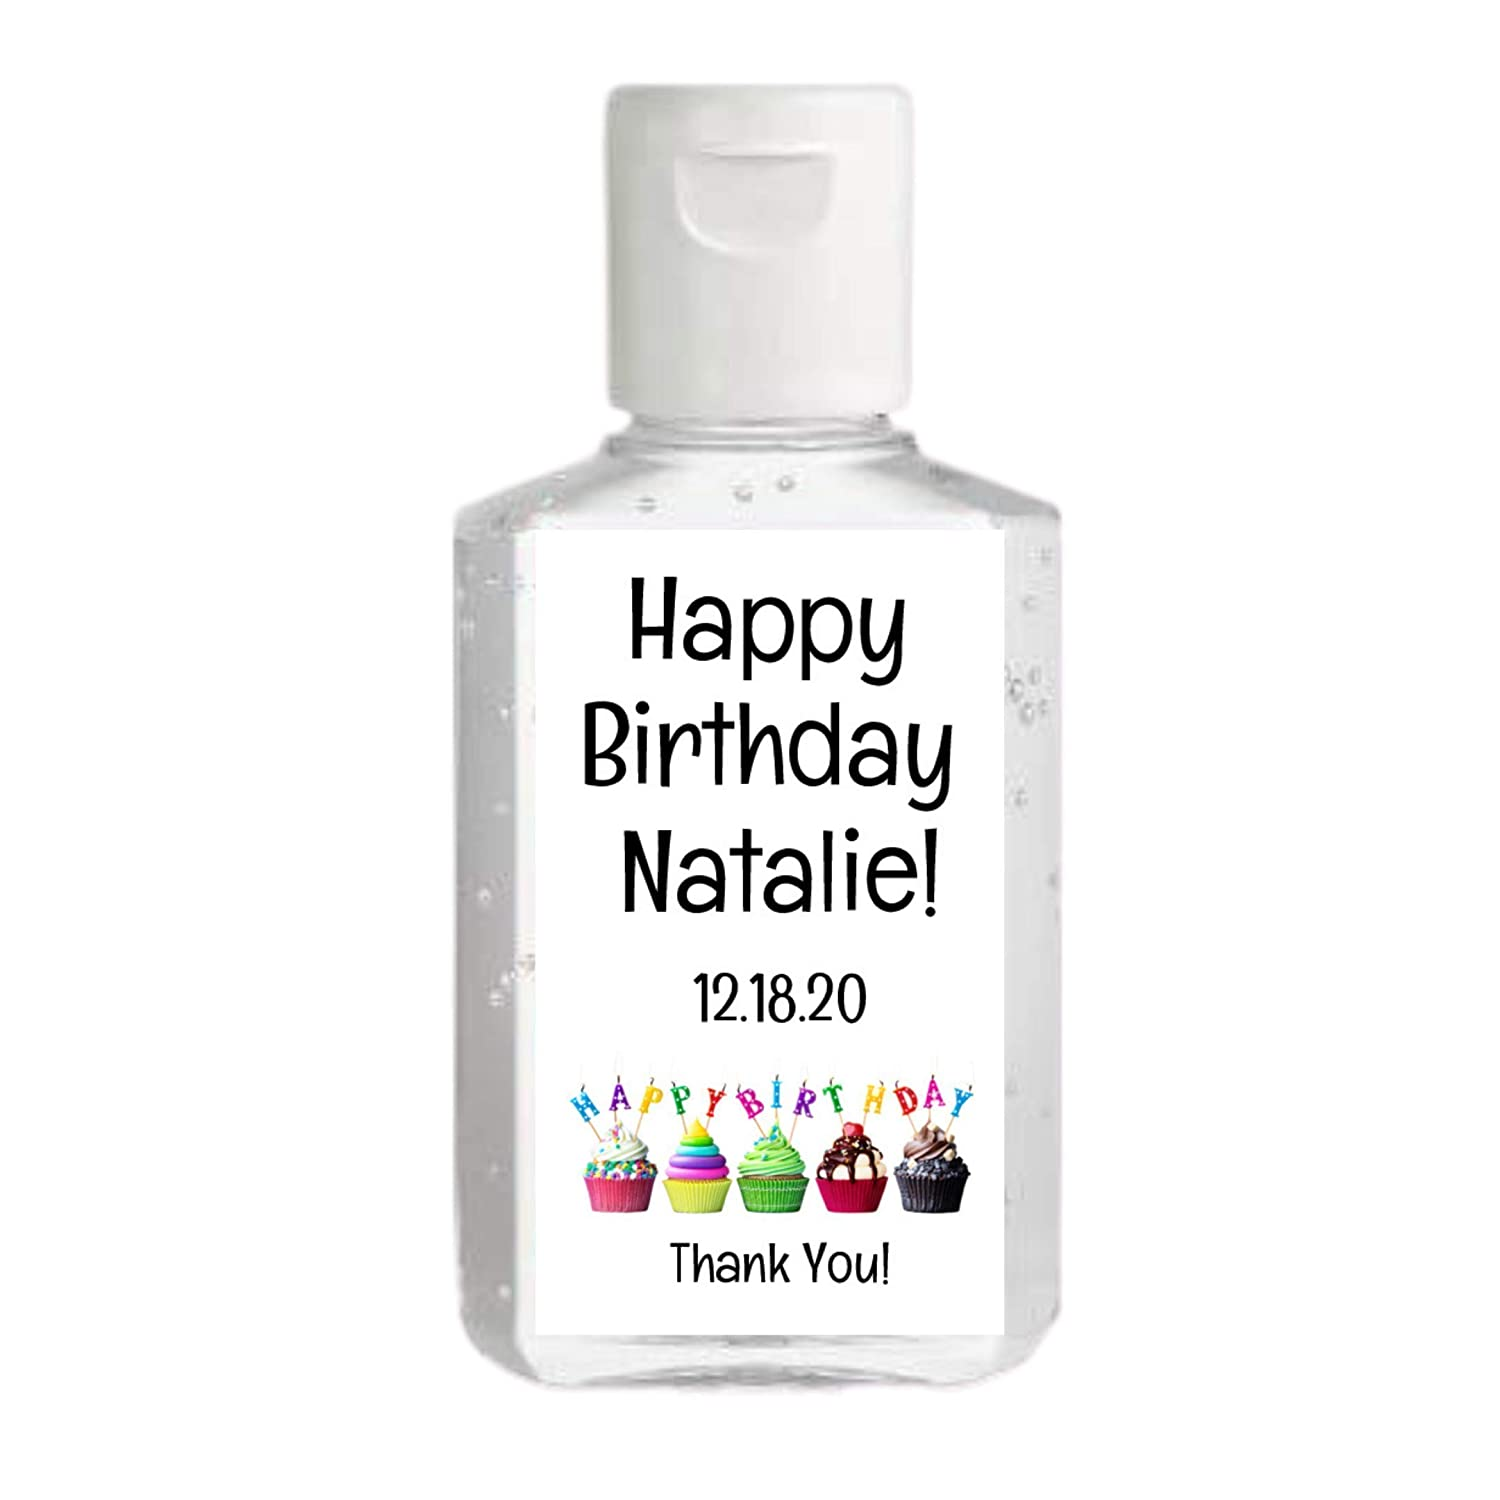 Empty Hand Sanitizer Bottles Favors 0002 Hand Sanitizer Labels For Birthday Favors Personalized Birthday Hand Sanitizer Labels Stickers